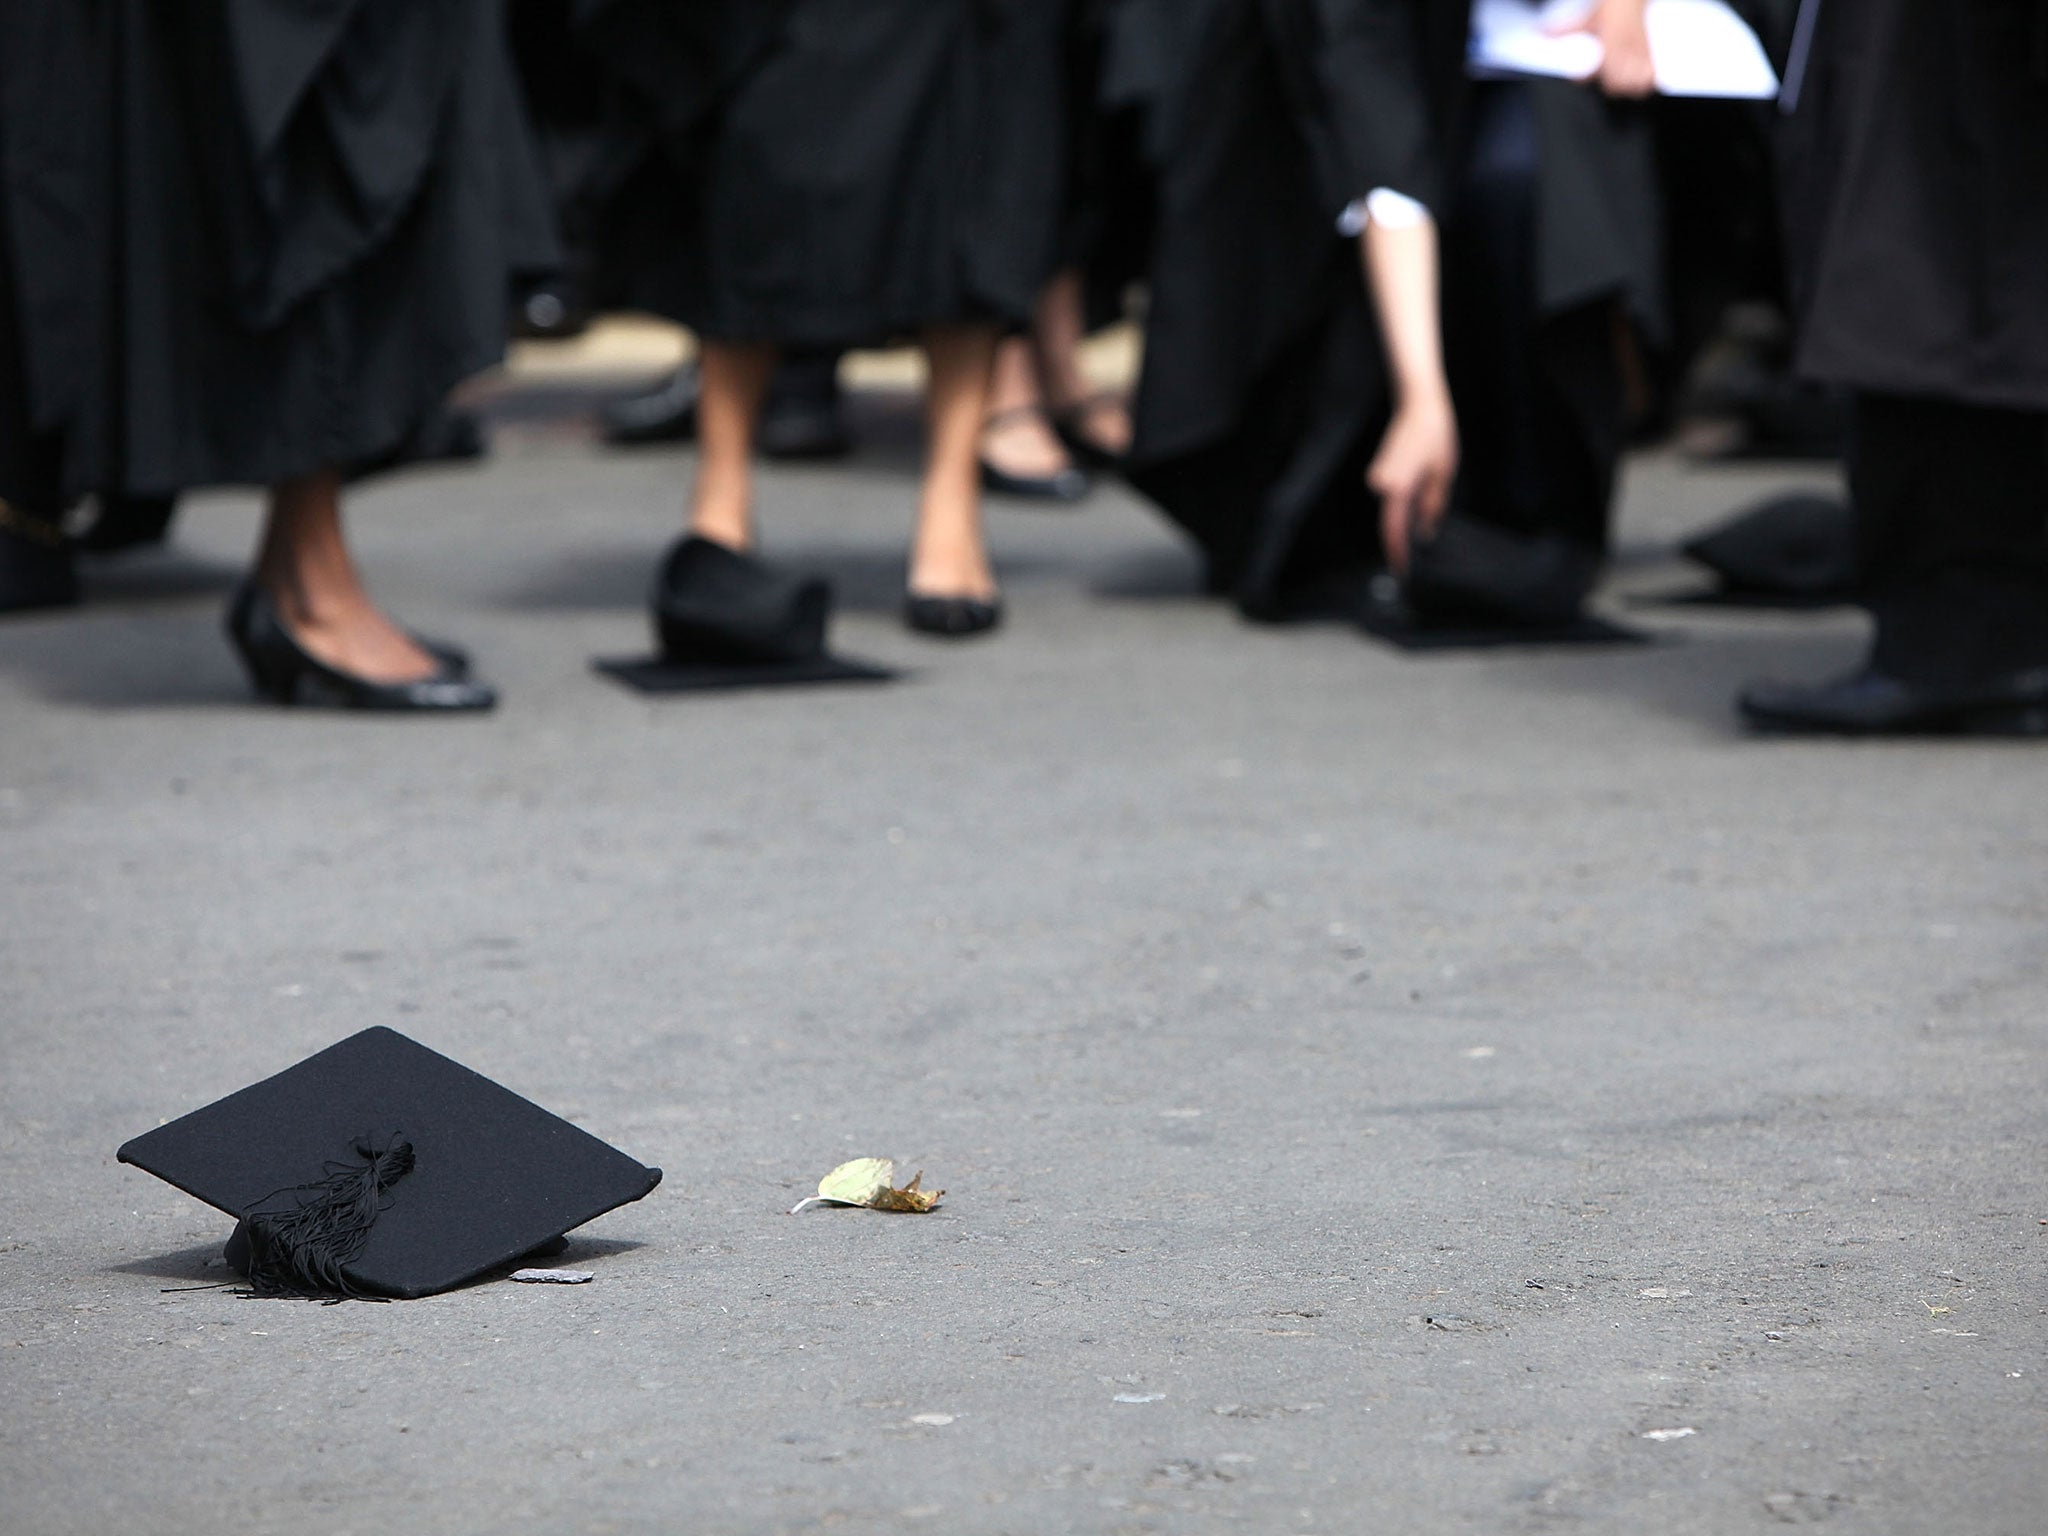 social mobility school leavers left behind to drift into dead social mobility school leavers left behind to drift into dead end jobs warns damning report the independent